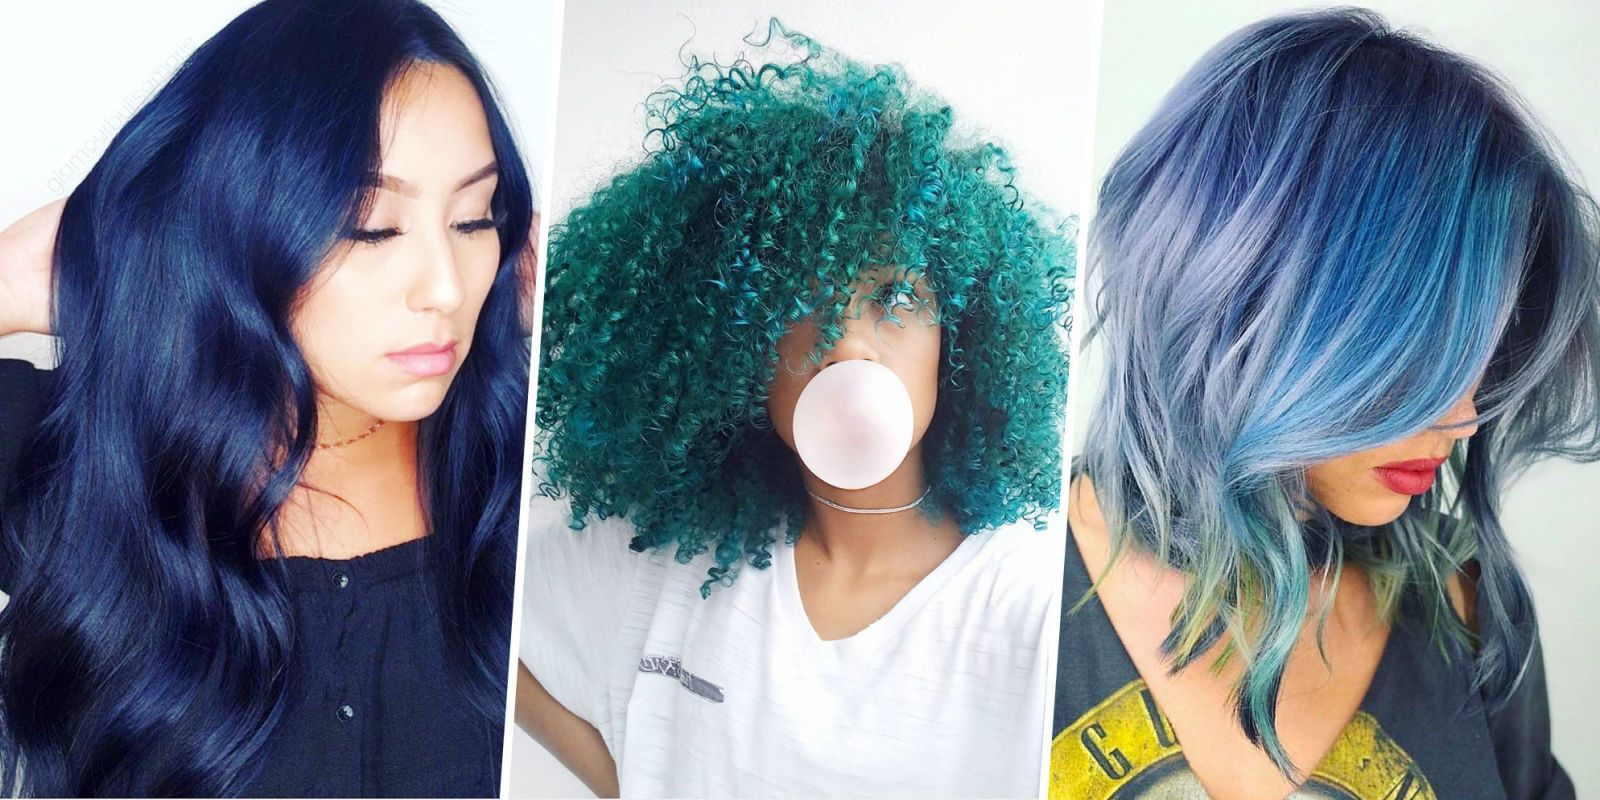 15 Best Blue Hairstyle Ideas - Pretty and Cool Blue Hair Inspo Pics